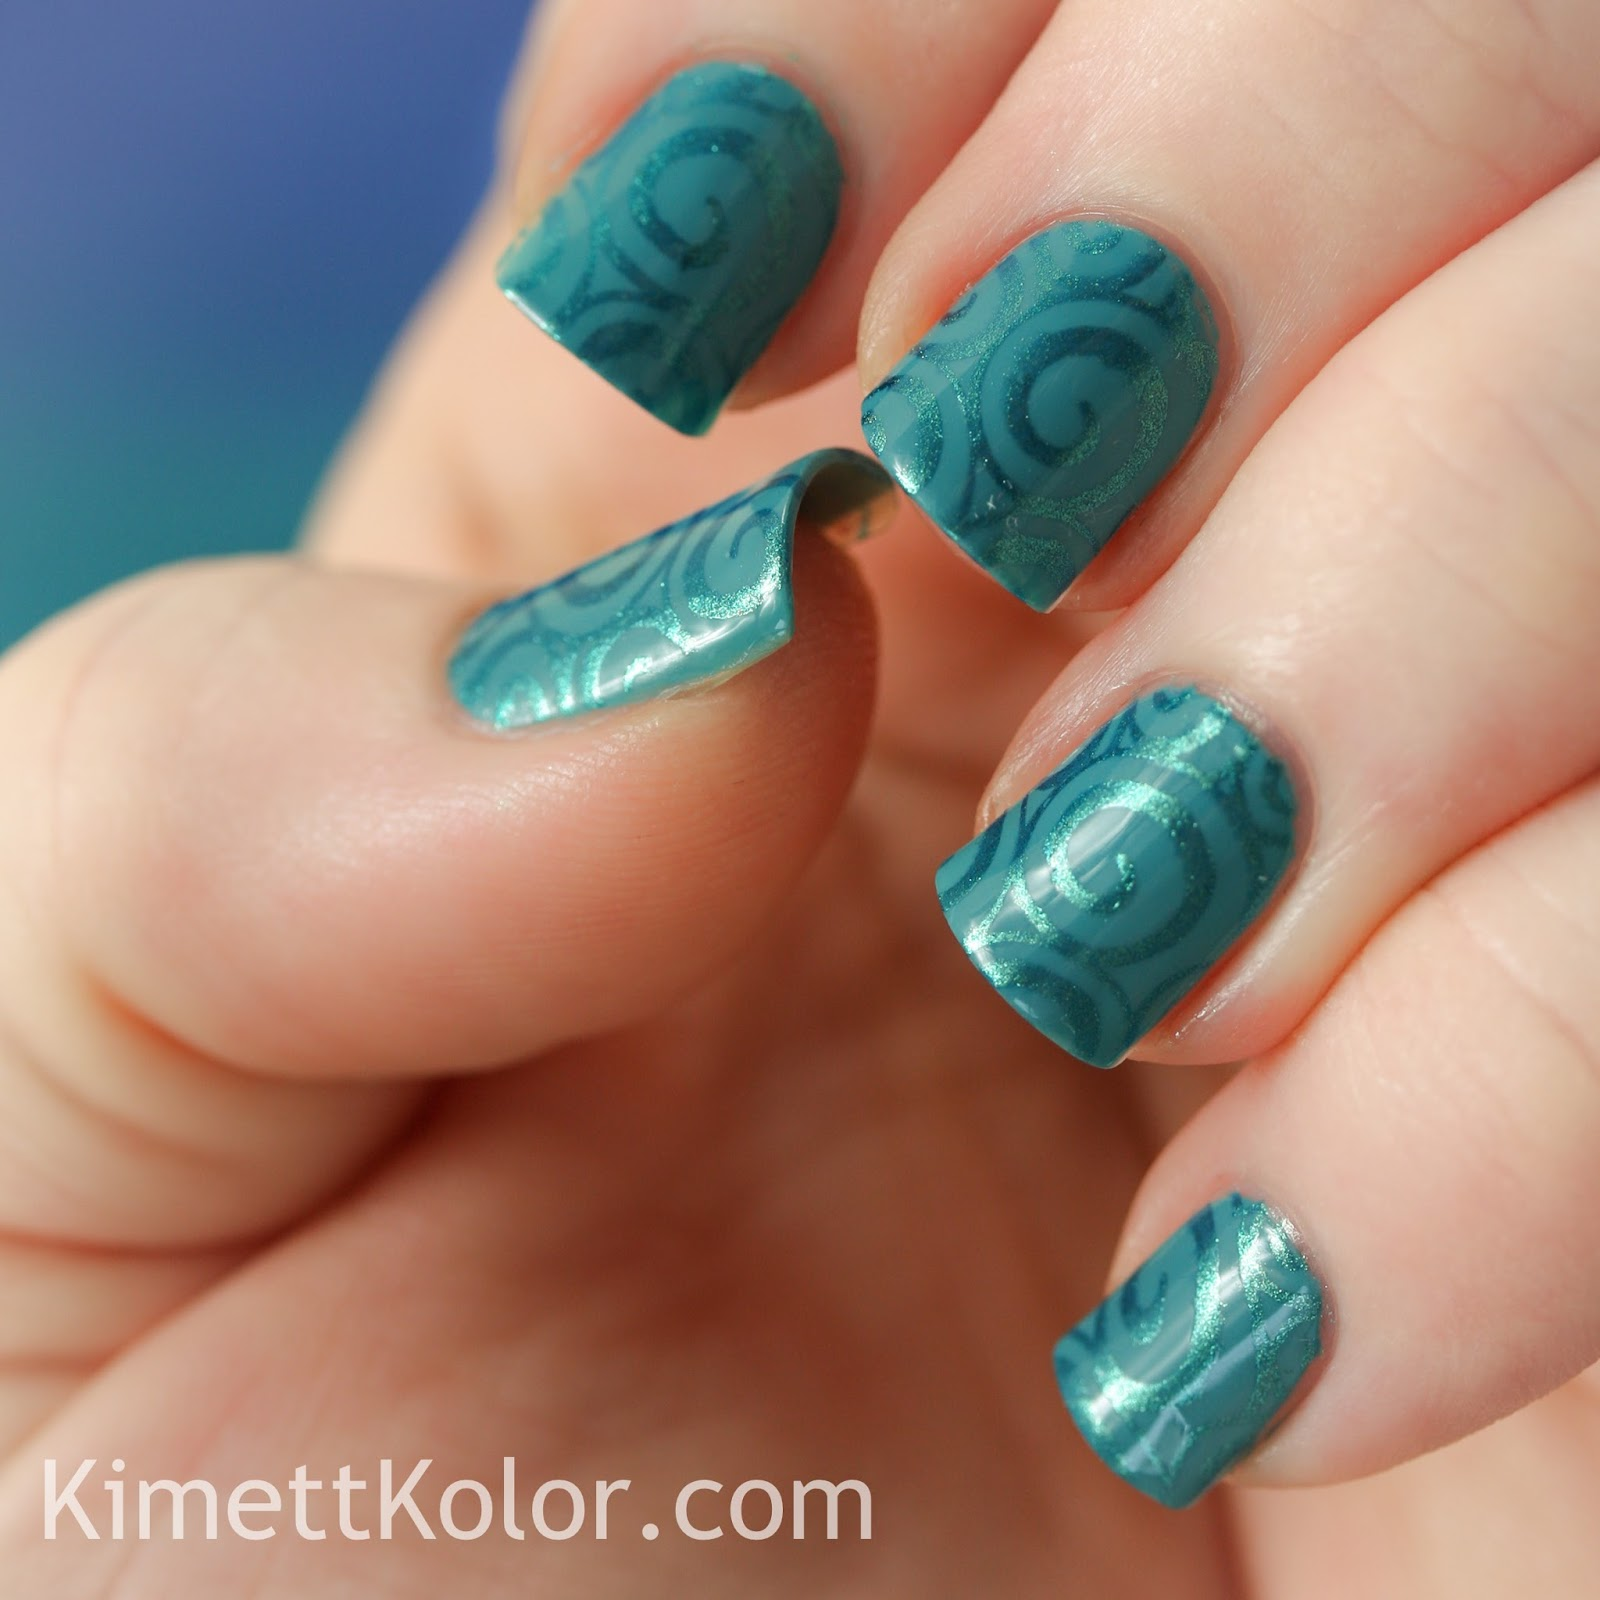 https://www.kimettkolor.com/2014/04/final-challenge-design-honoring-nails.html